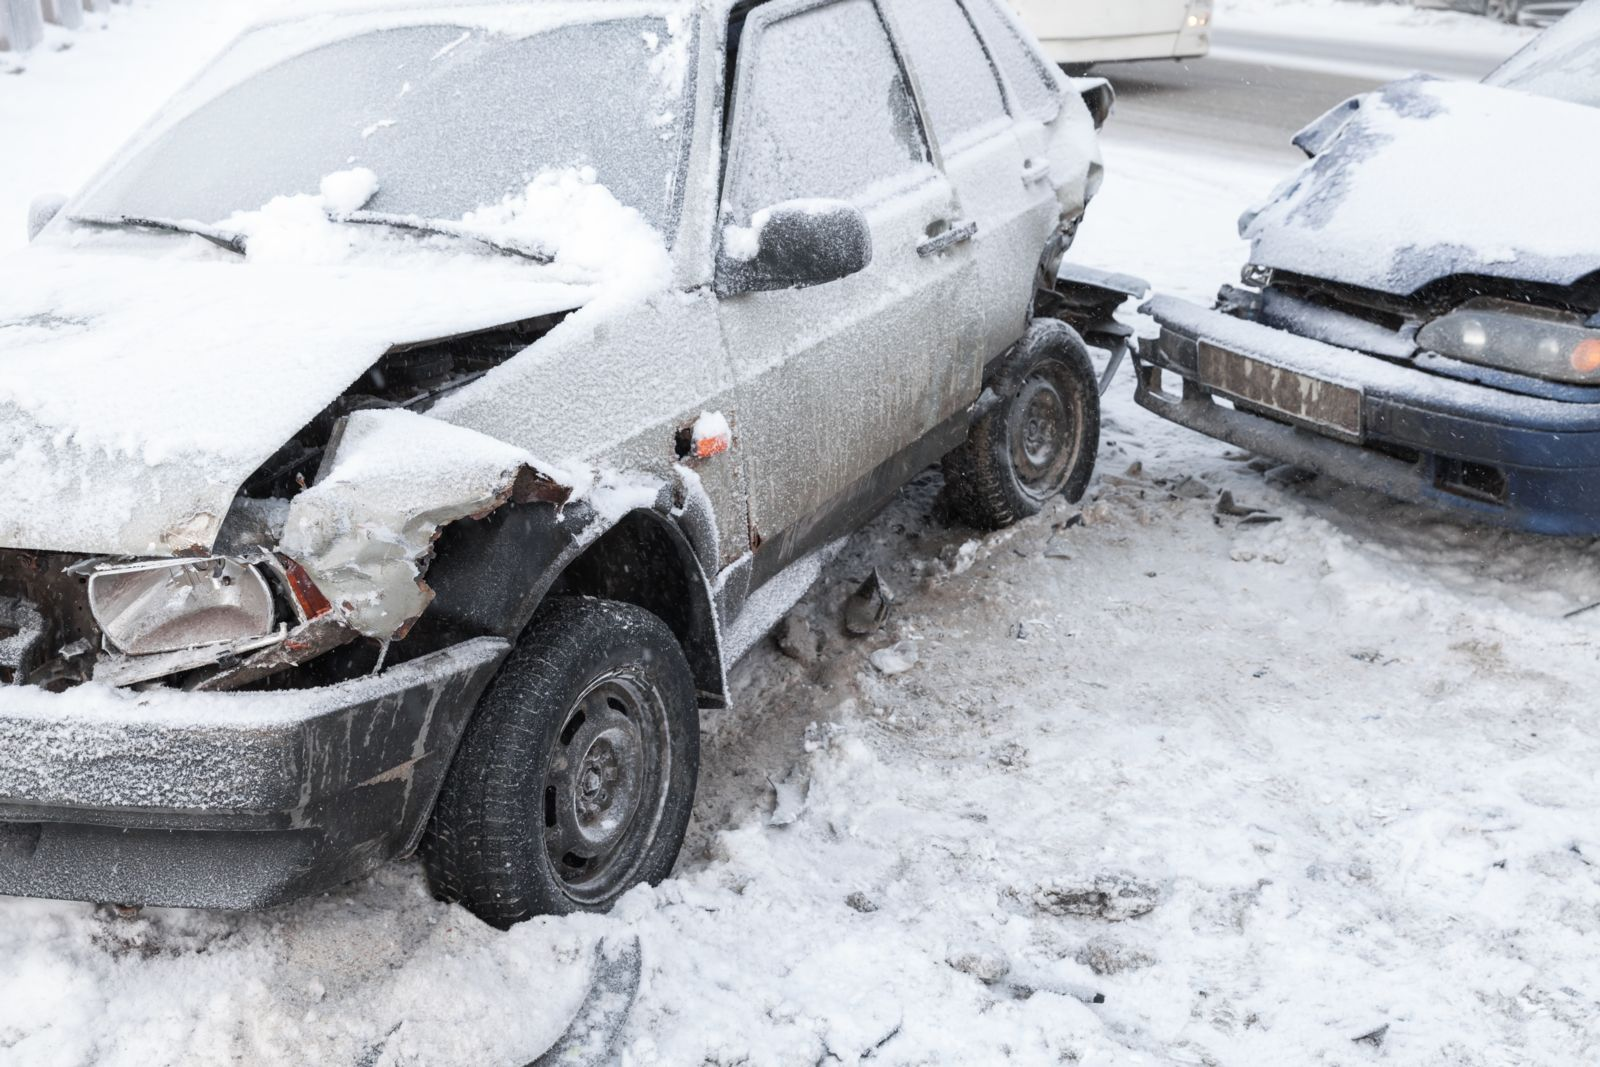 Two Cars After Car Accident in Snow